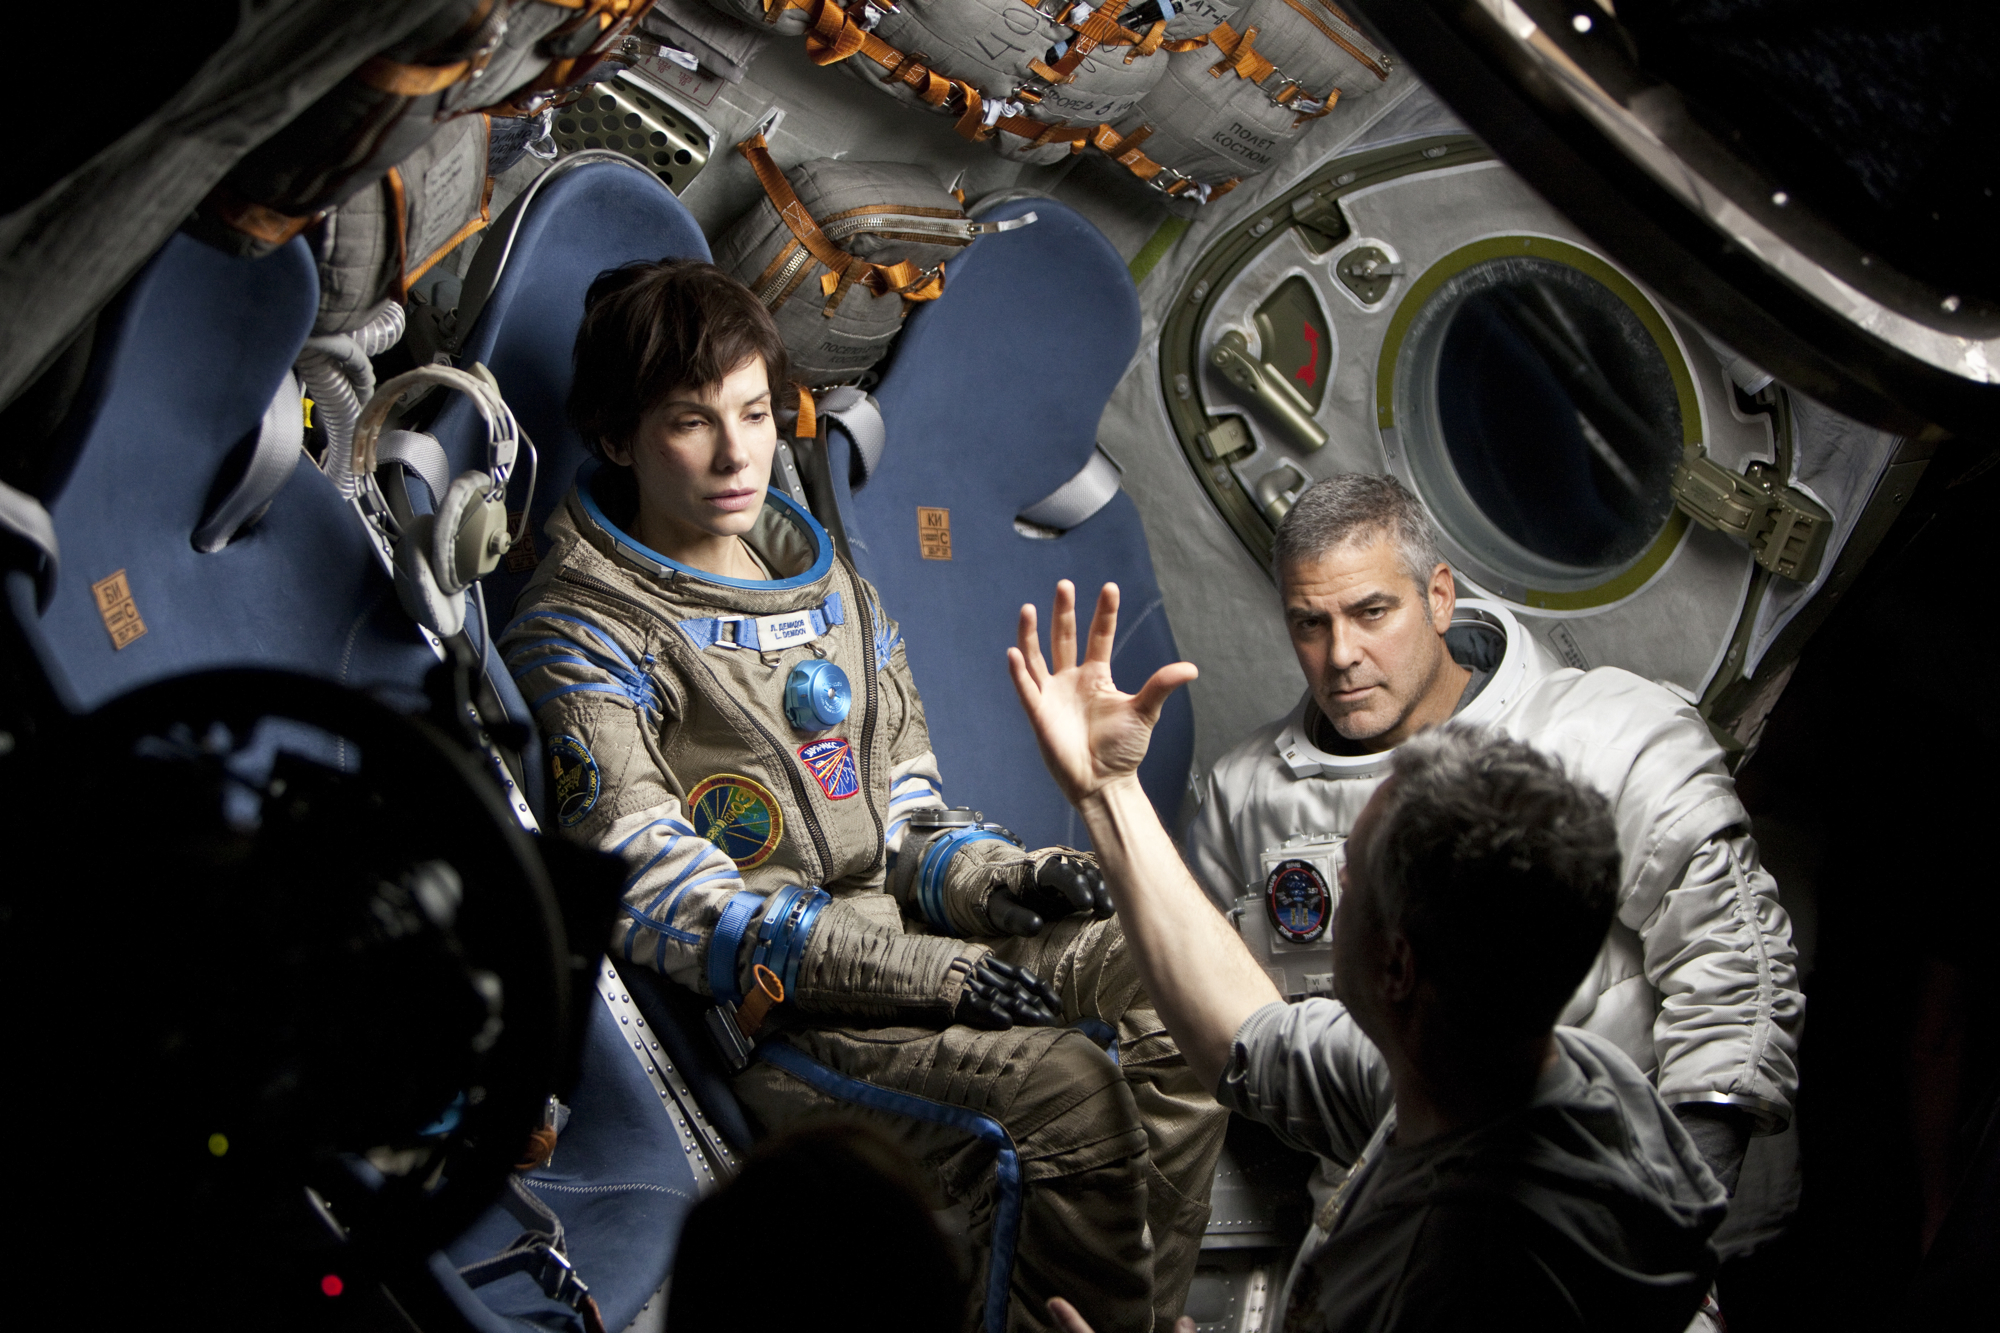 Alfonso Cuarón's 'Gravity': NY Premiere Pass Sweepstakes!